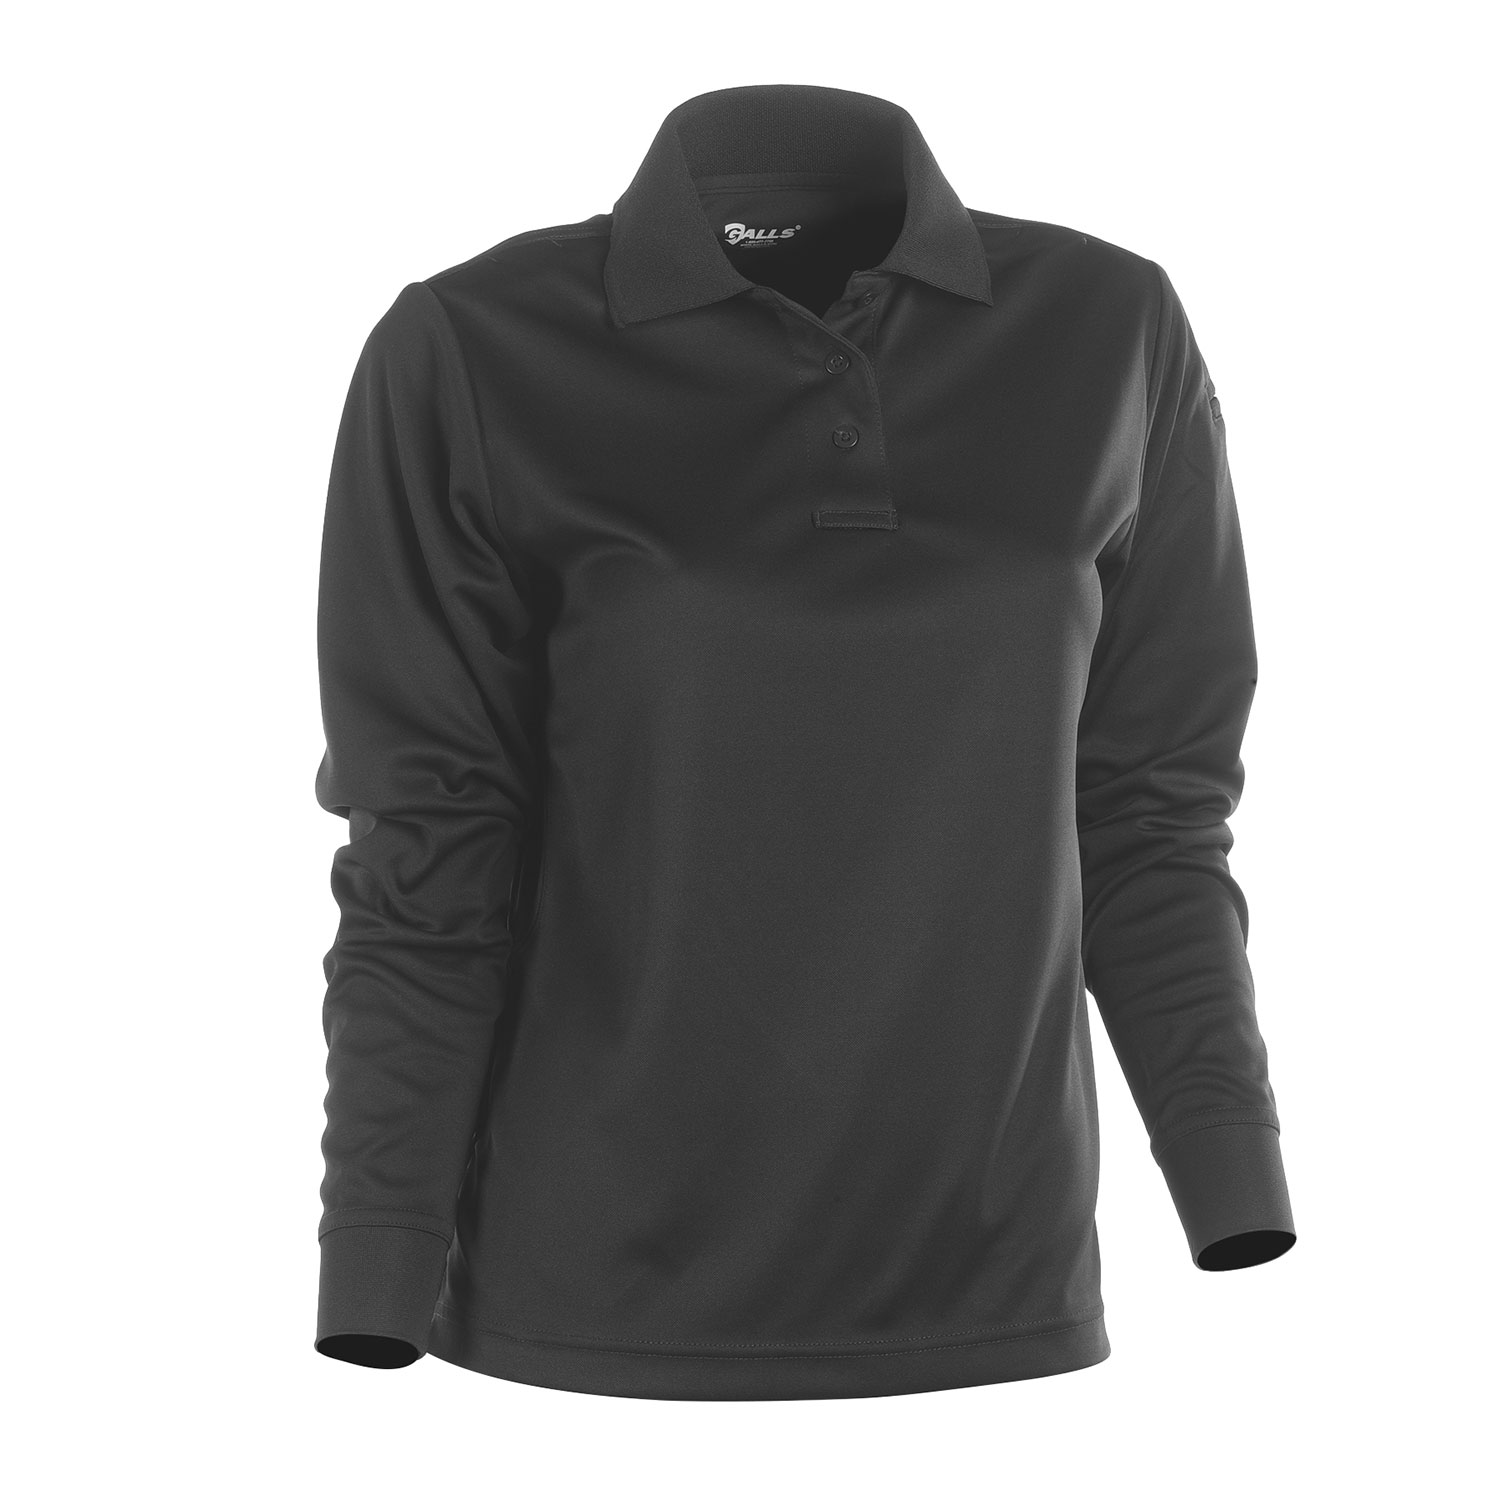 Galls G-Tac Womens Tactical Performance Polo